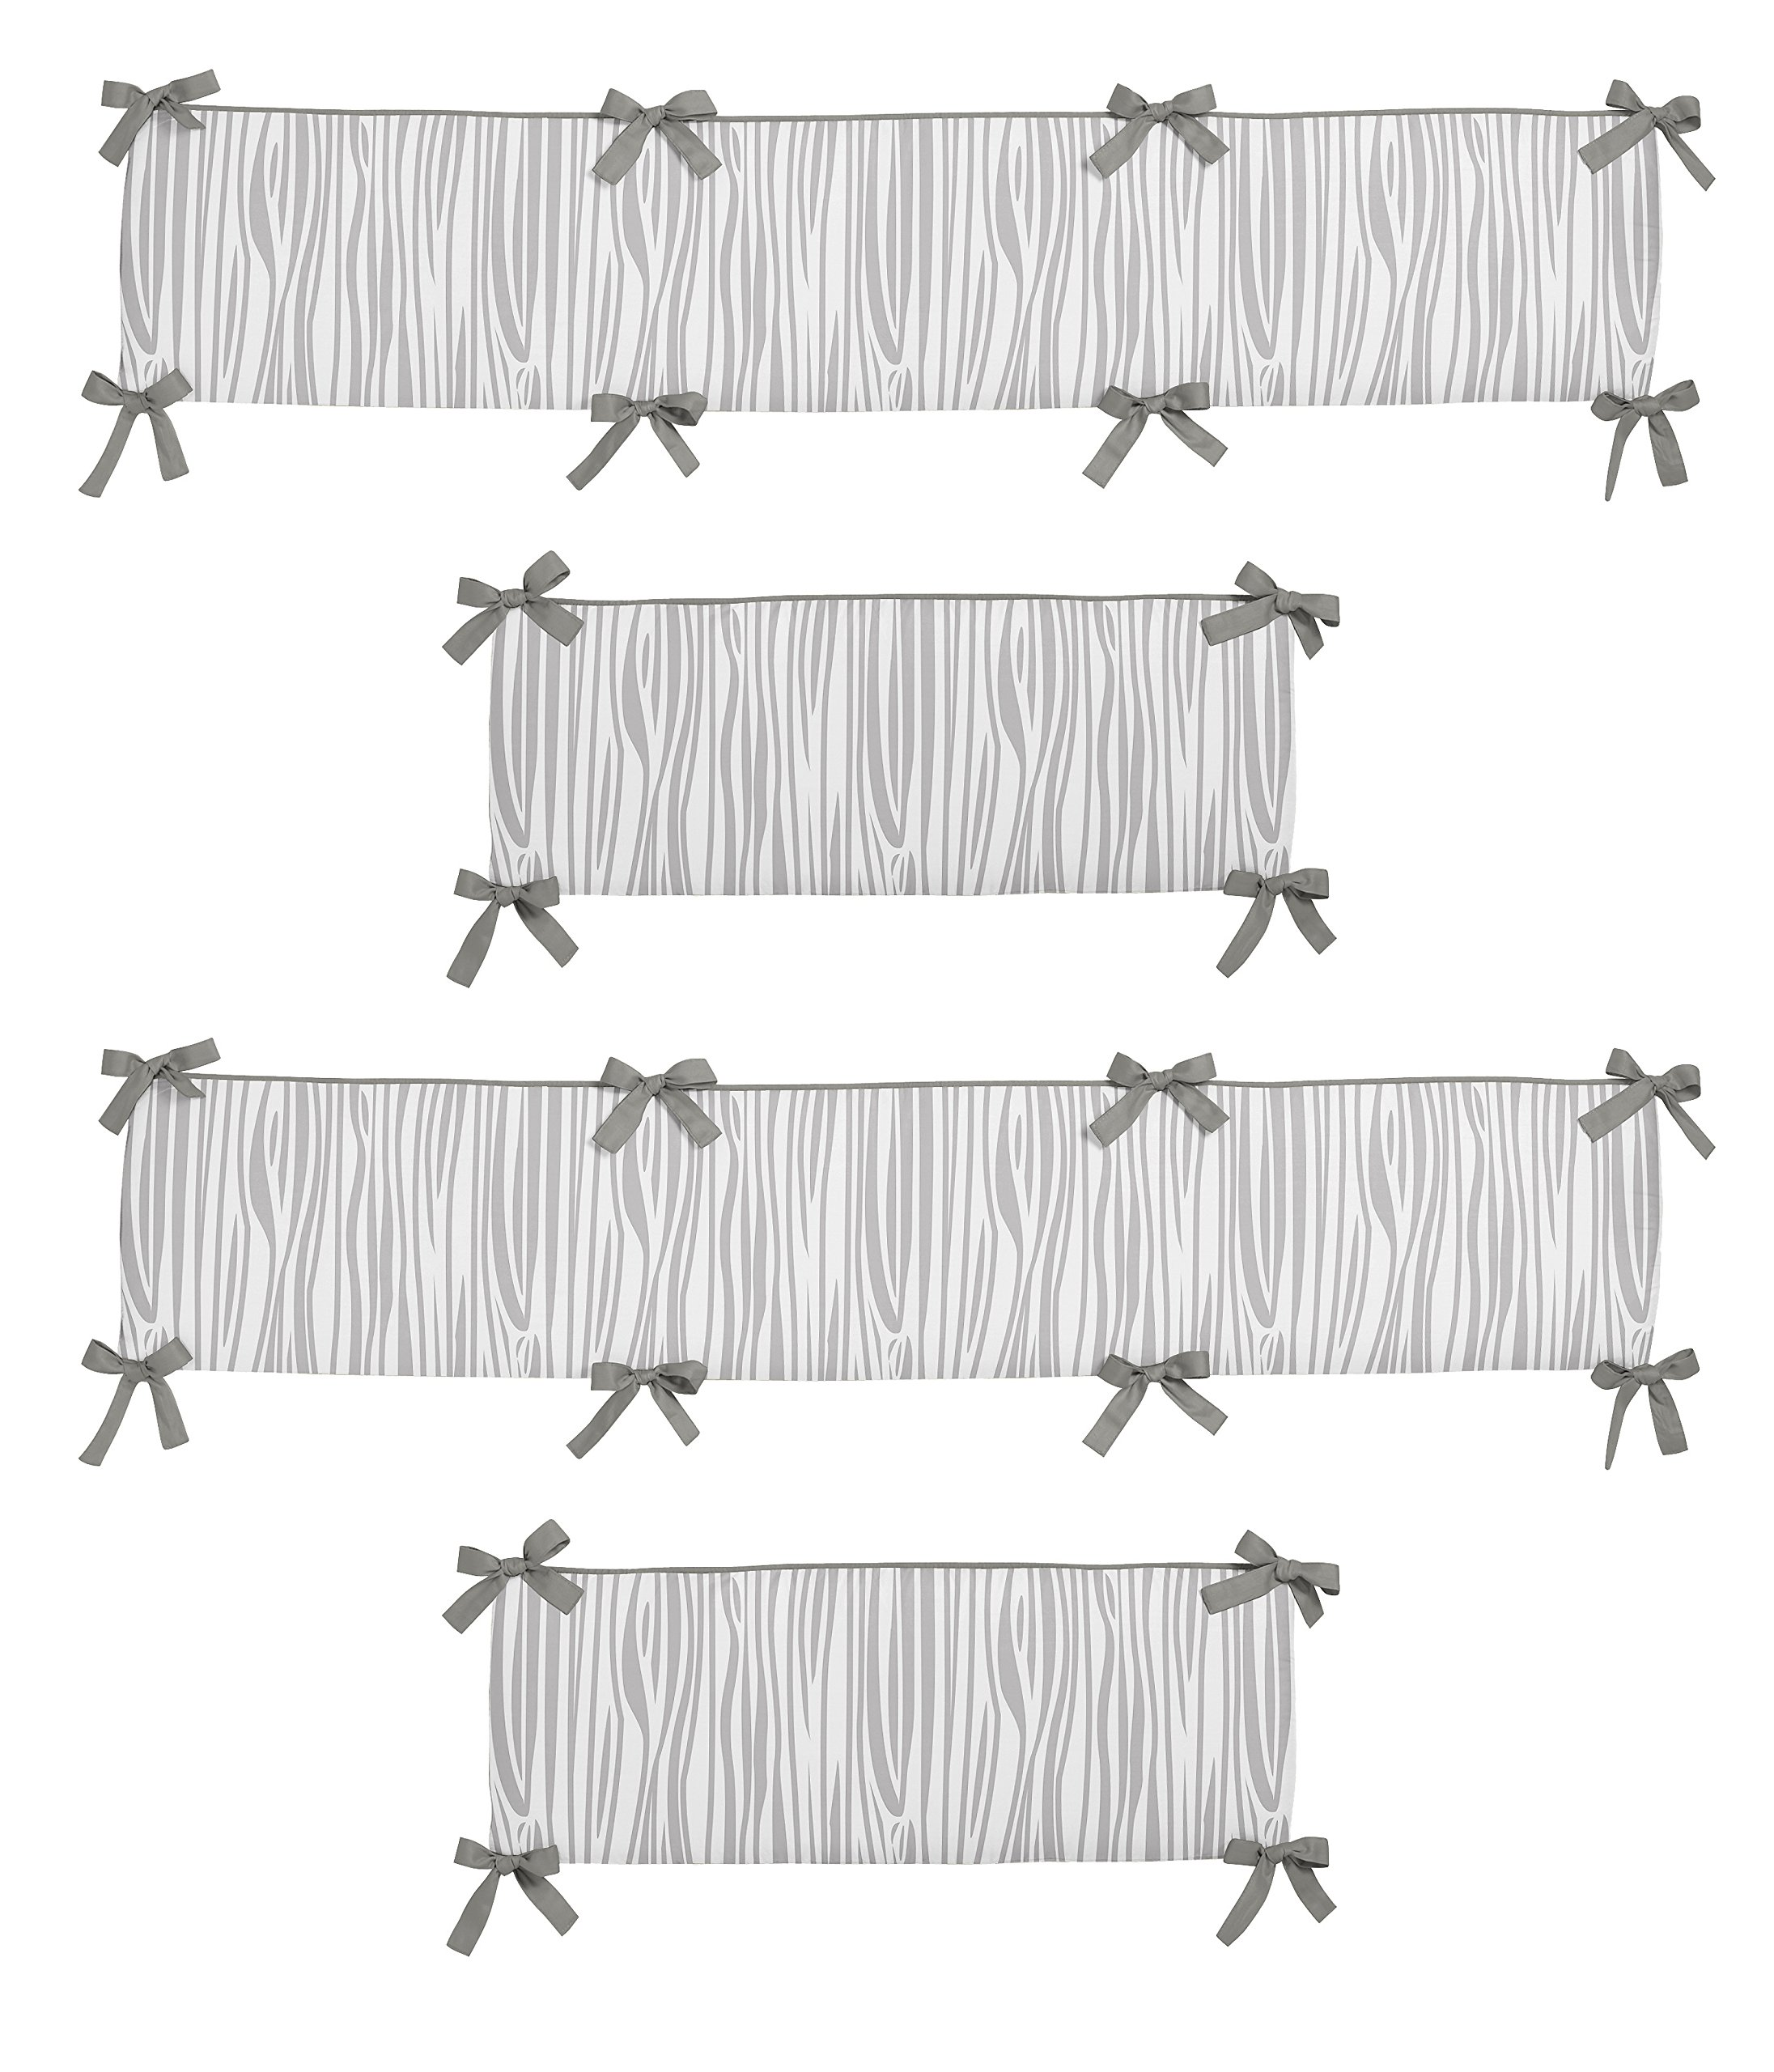 Sweet Jojo Designs Grey and White Wood Grain Baby Crib Bumper Pad for Woodsy Collection by by Sweet Jojo Designs (Image #1)